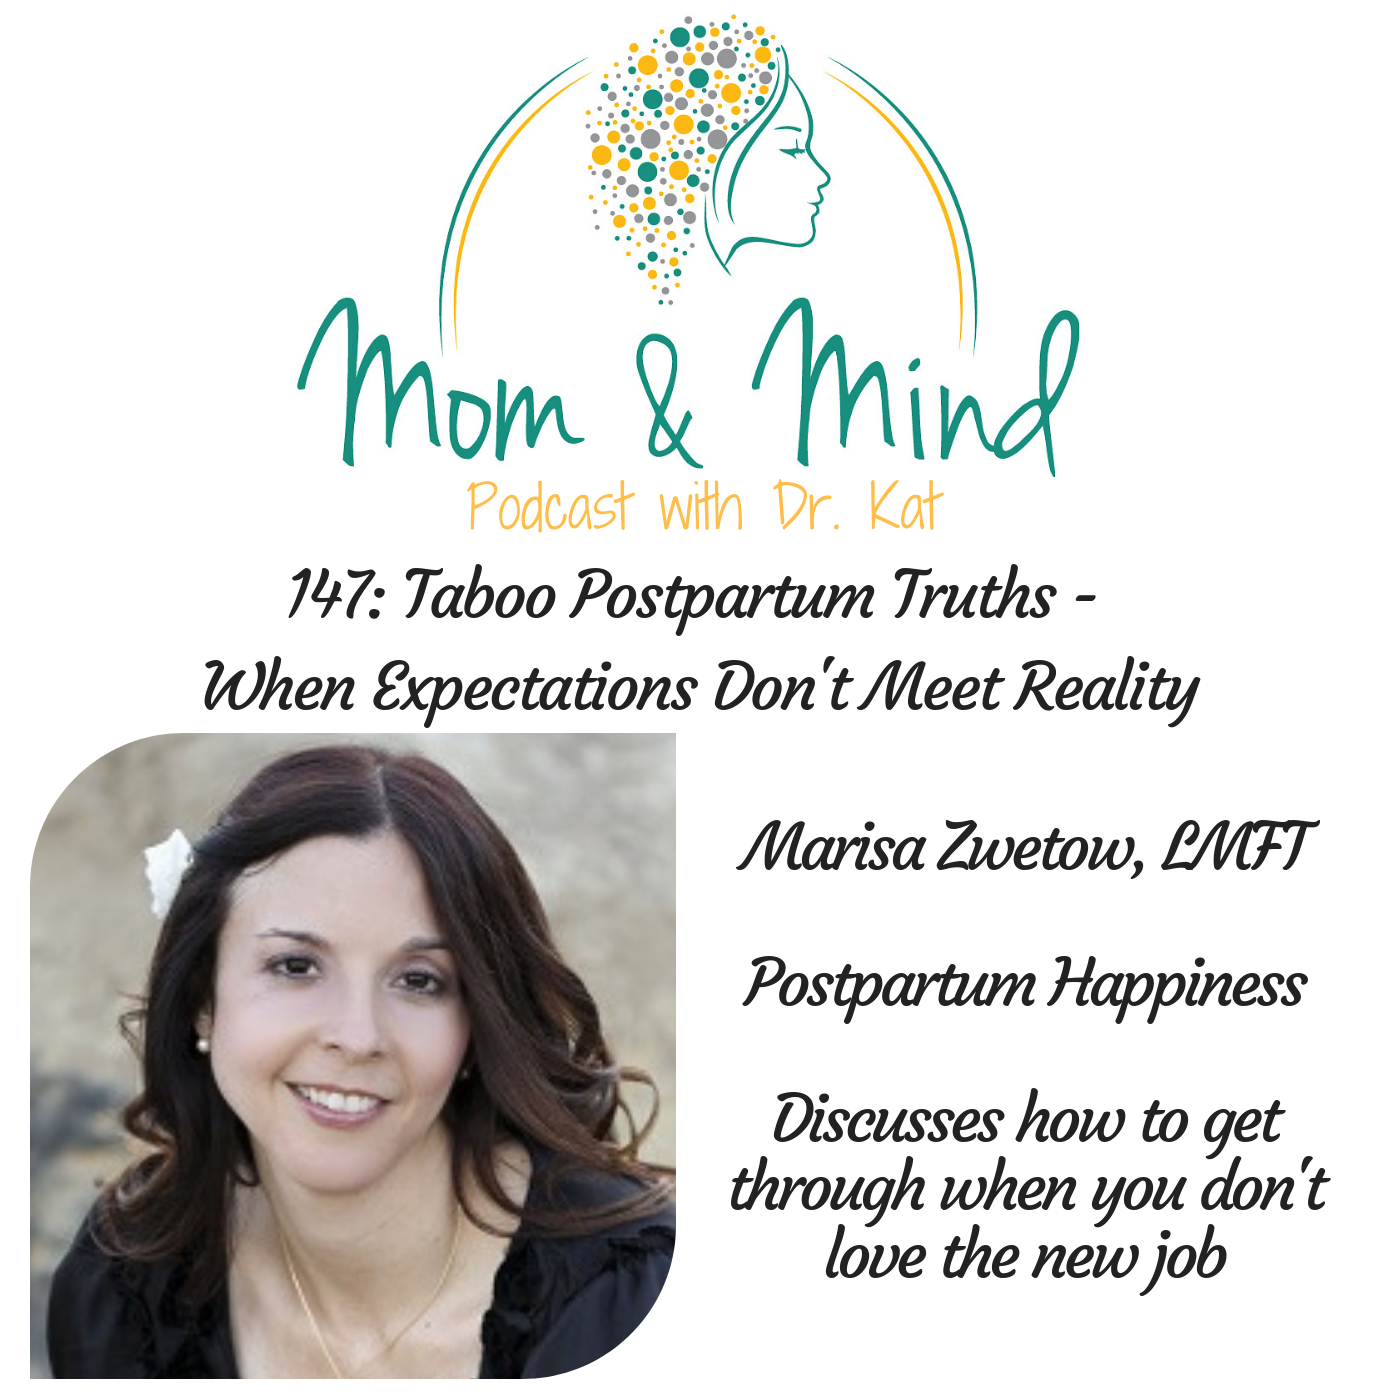 147-taboo-postpartum-truths-and-8211-when-expectations-don-and-8217-t-meet-reality_thumbnail.png